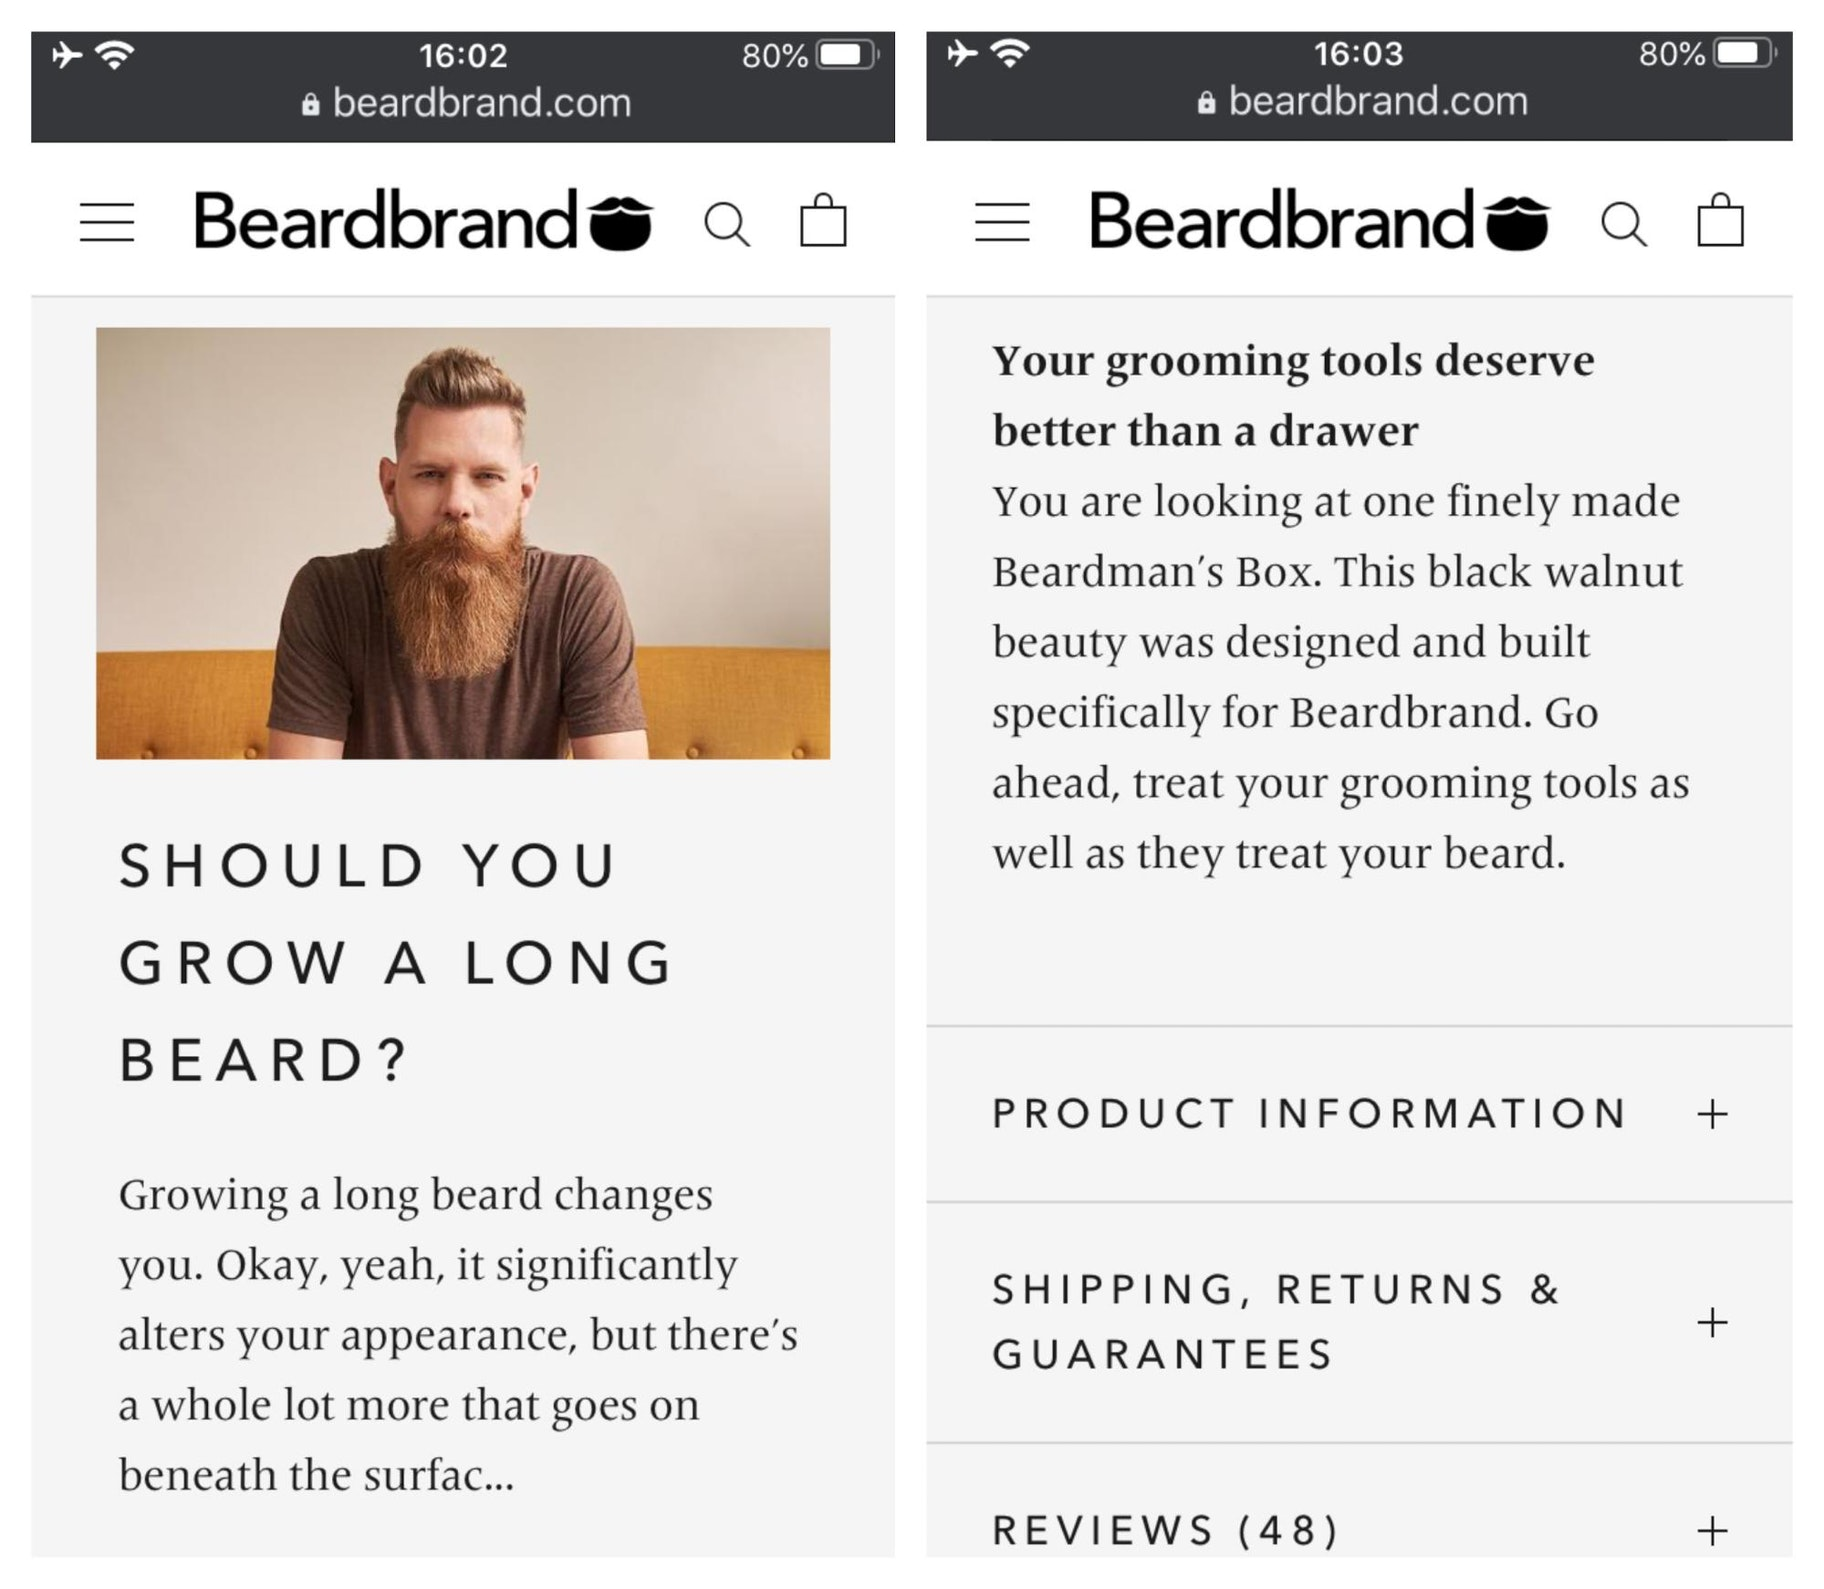 Beardbrand Large Text